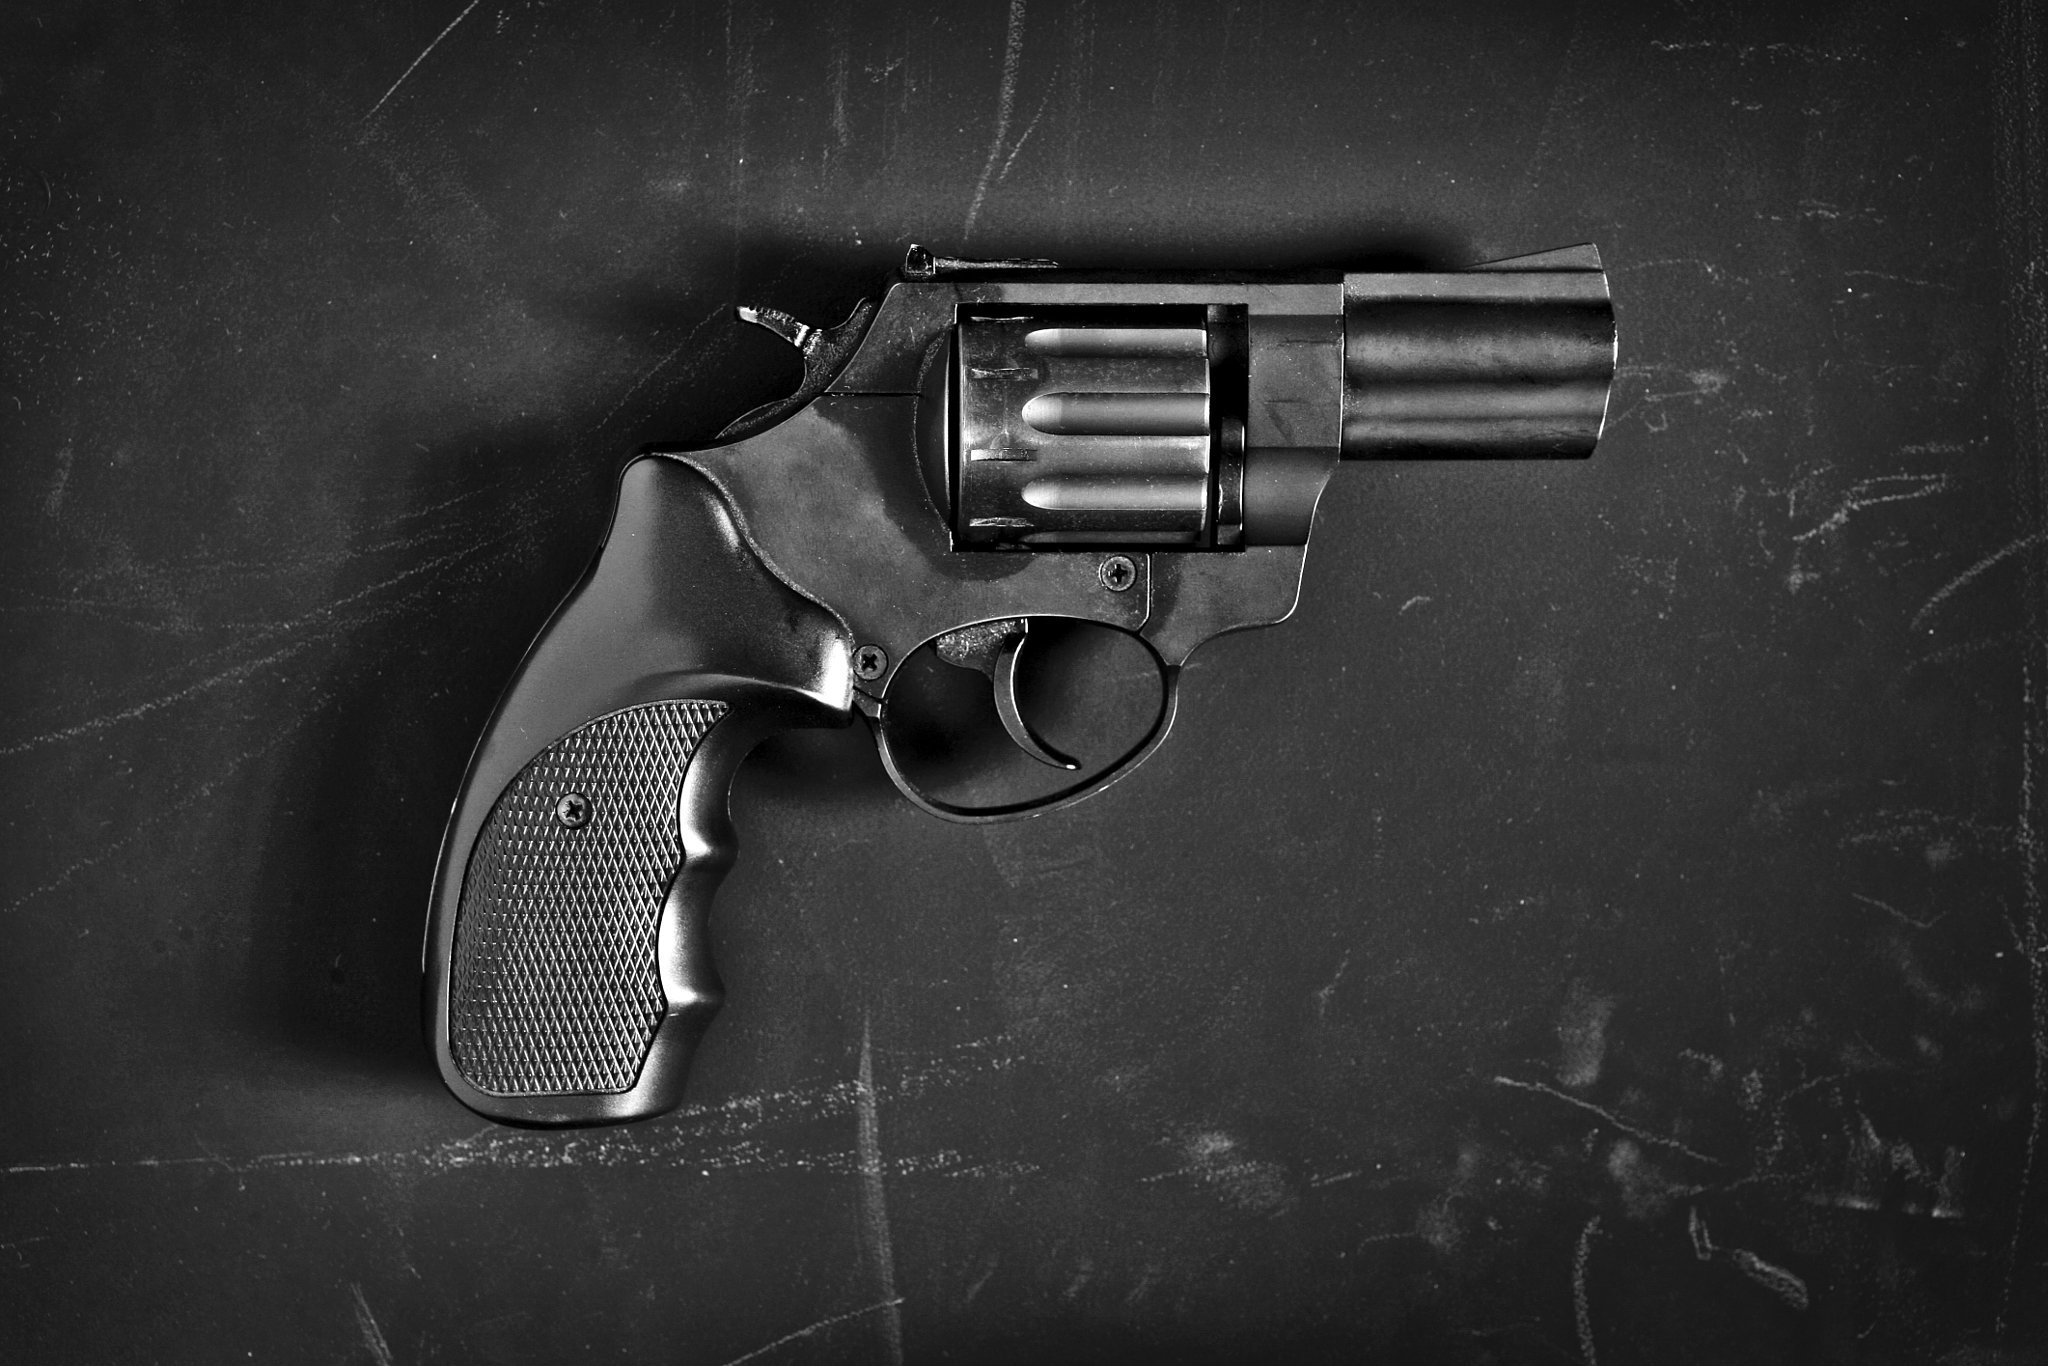 Eighty percent of accidental firearm deaths of kids under age 15 occur at home.